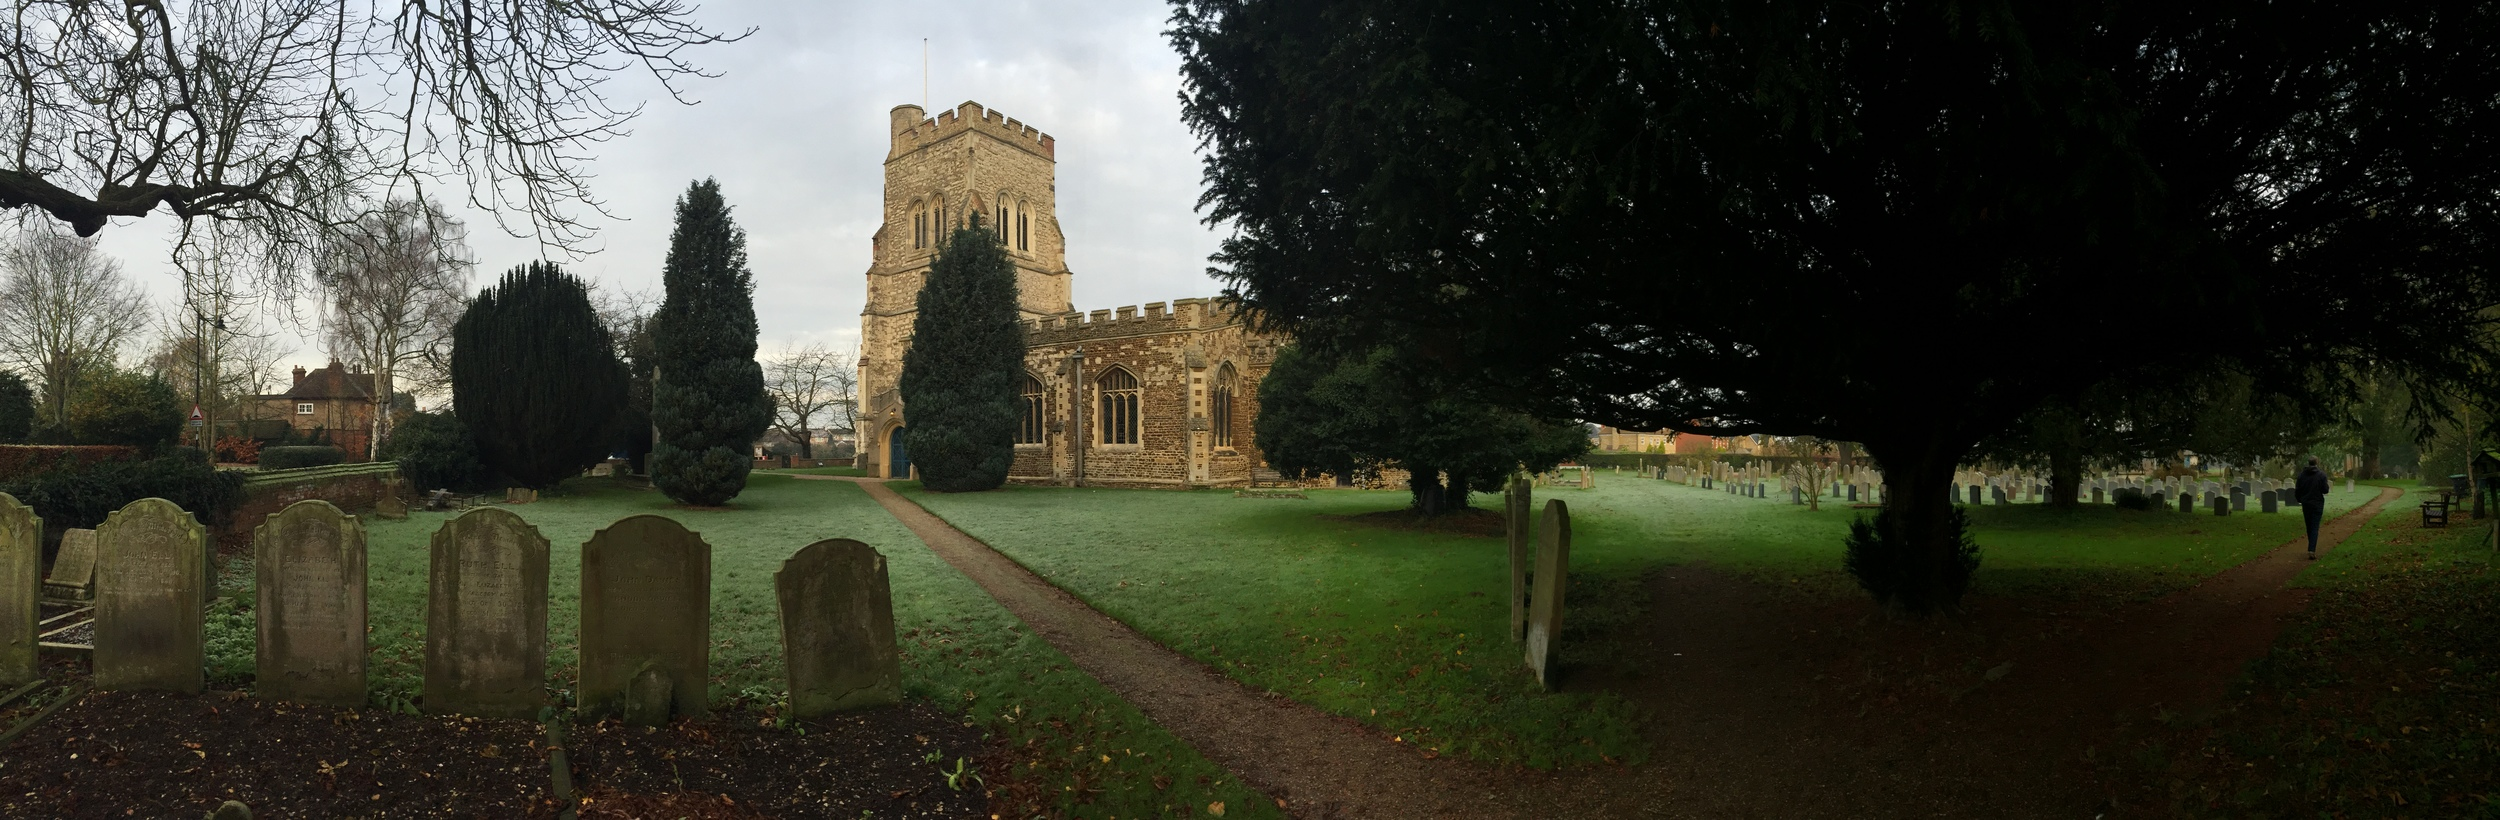 The parish church of Henlow, Bedfordshire, where Henry Samson was baptized on 15 January 1603/4.